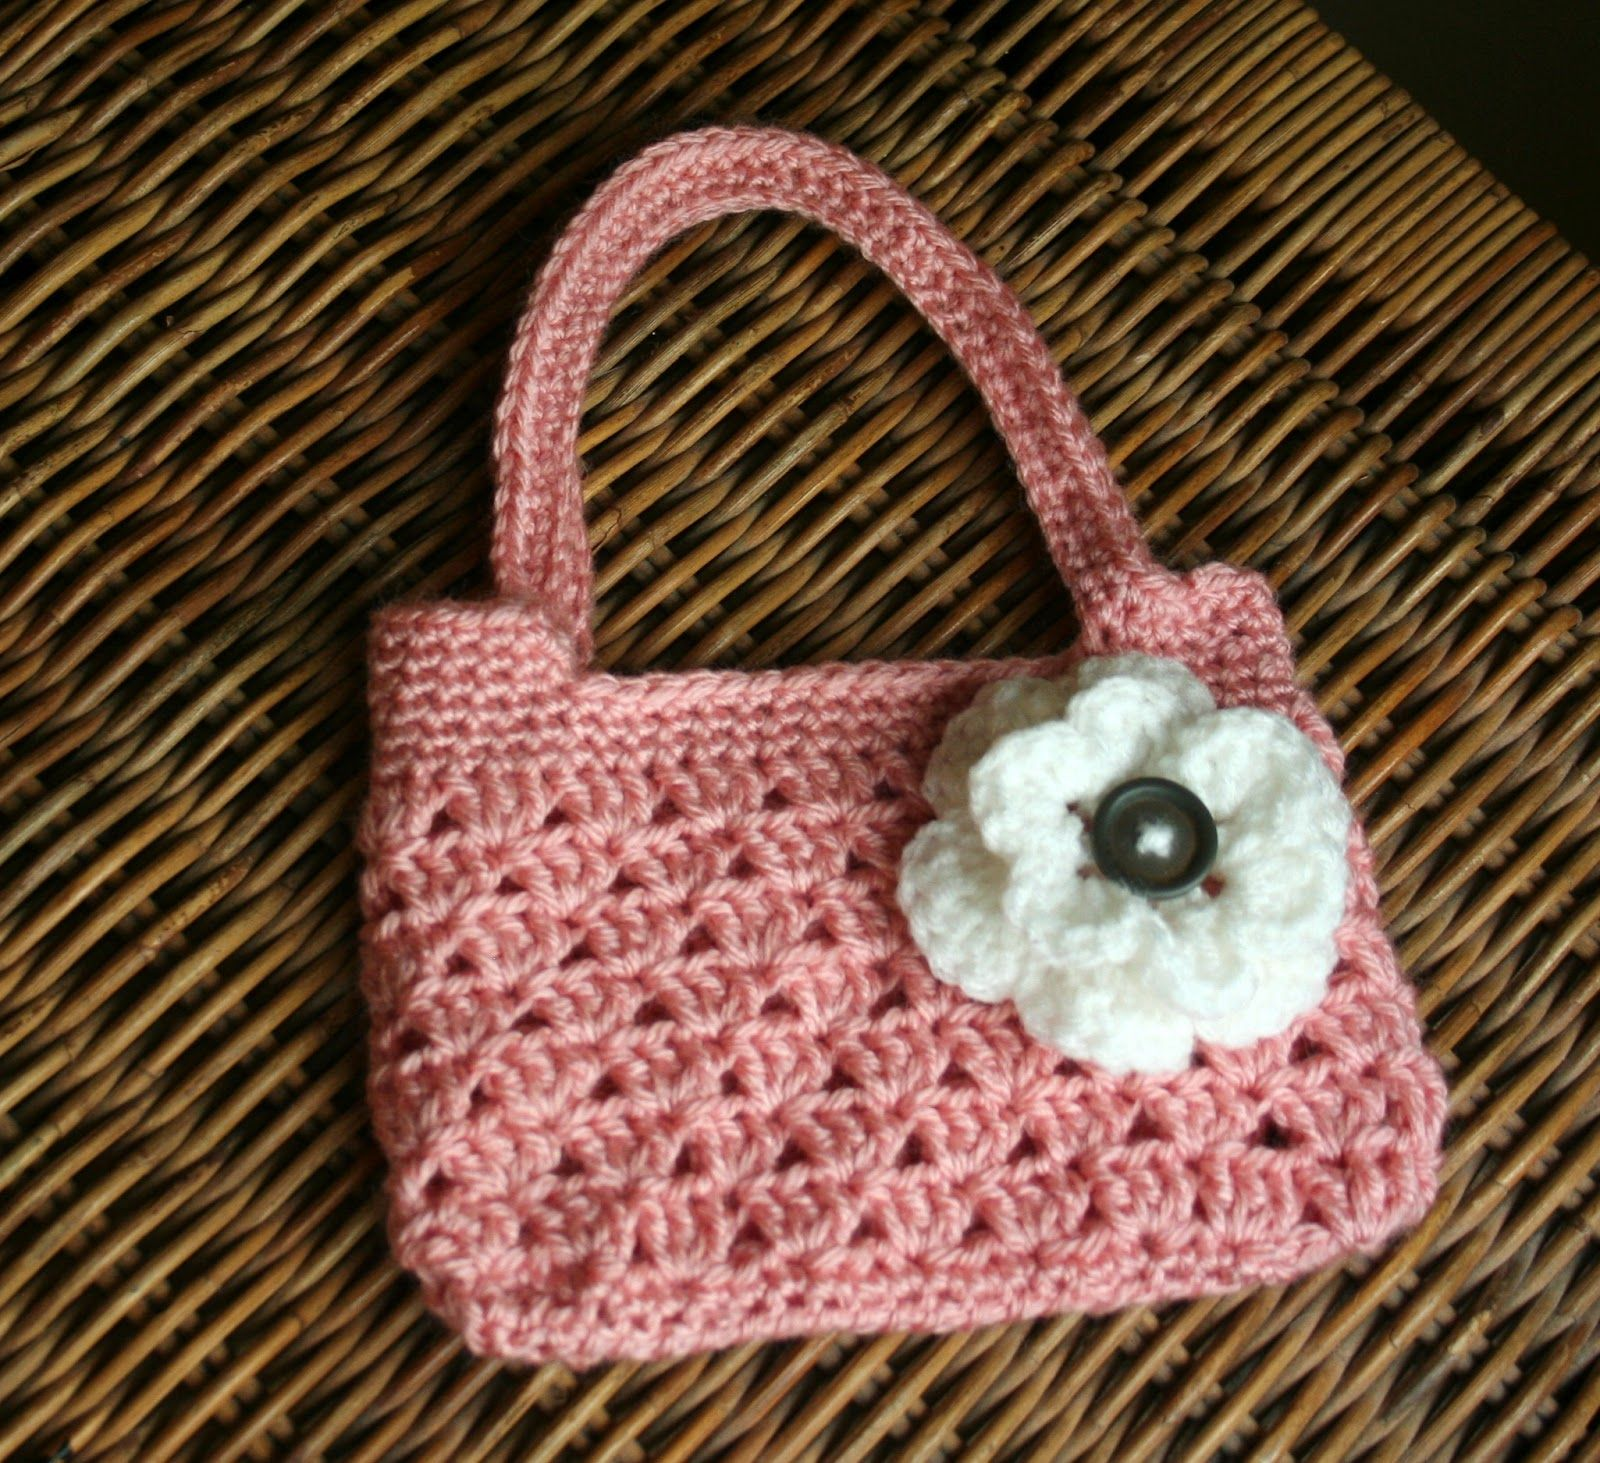 Tampa Bay Crochet: Free Easy Crochet Purse Pattern | Crochet ...